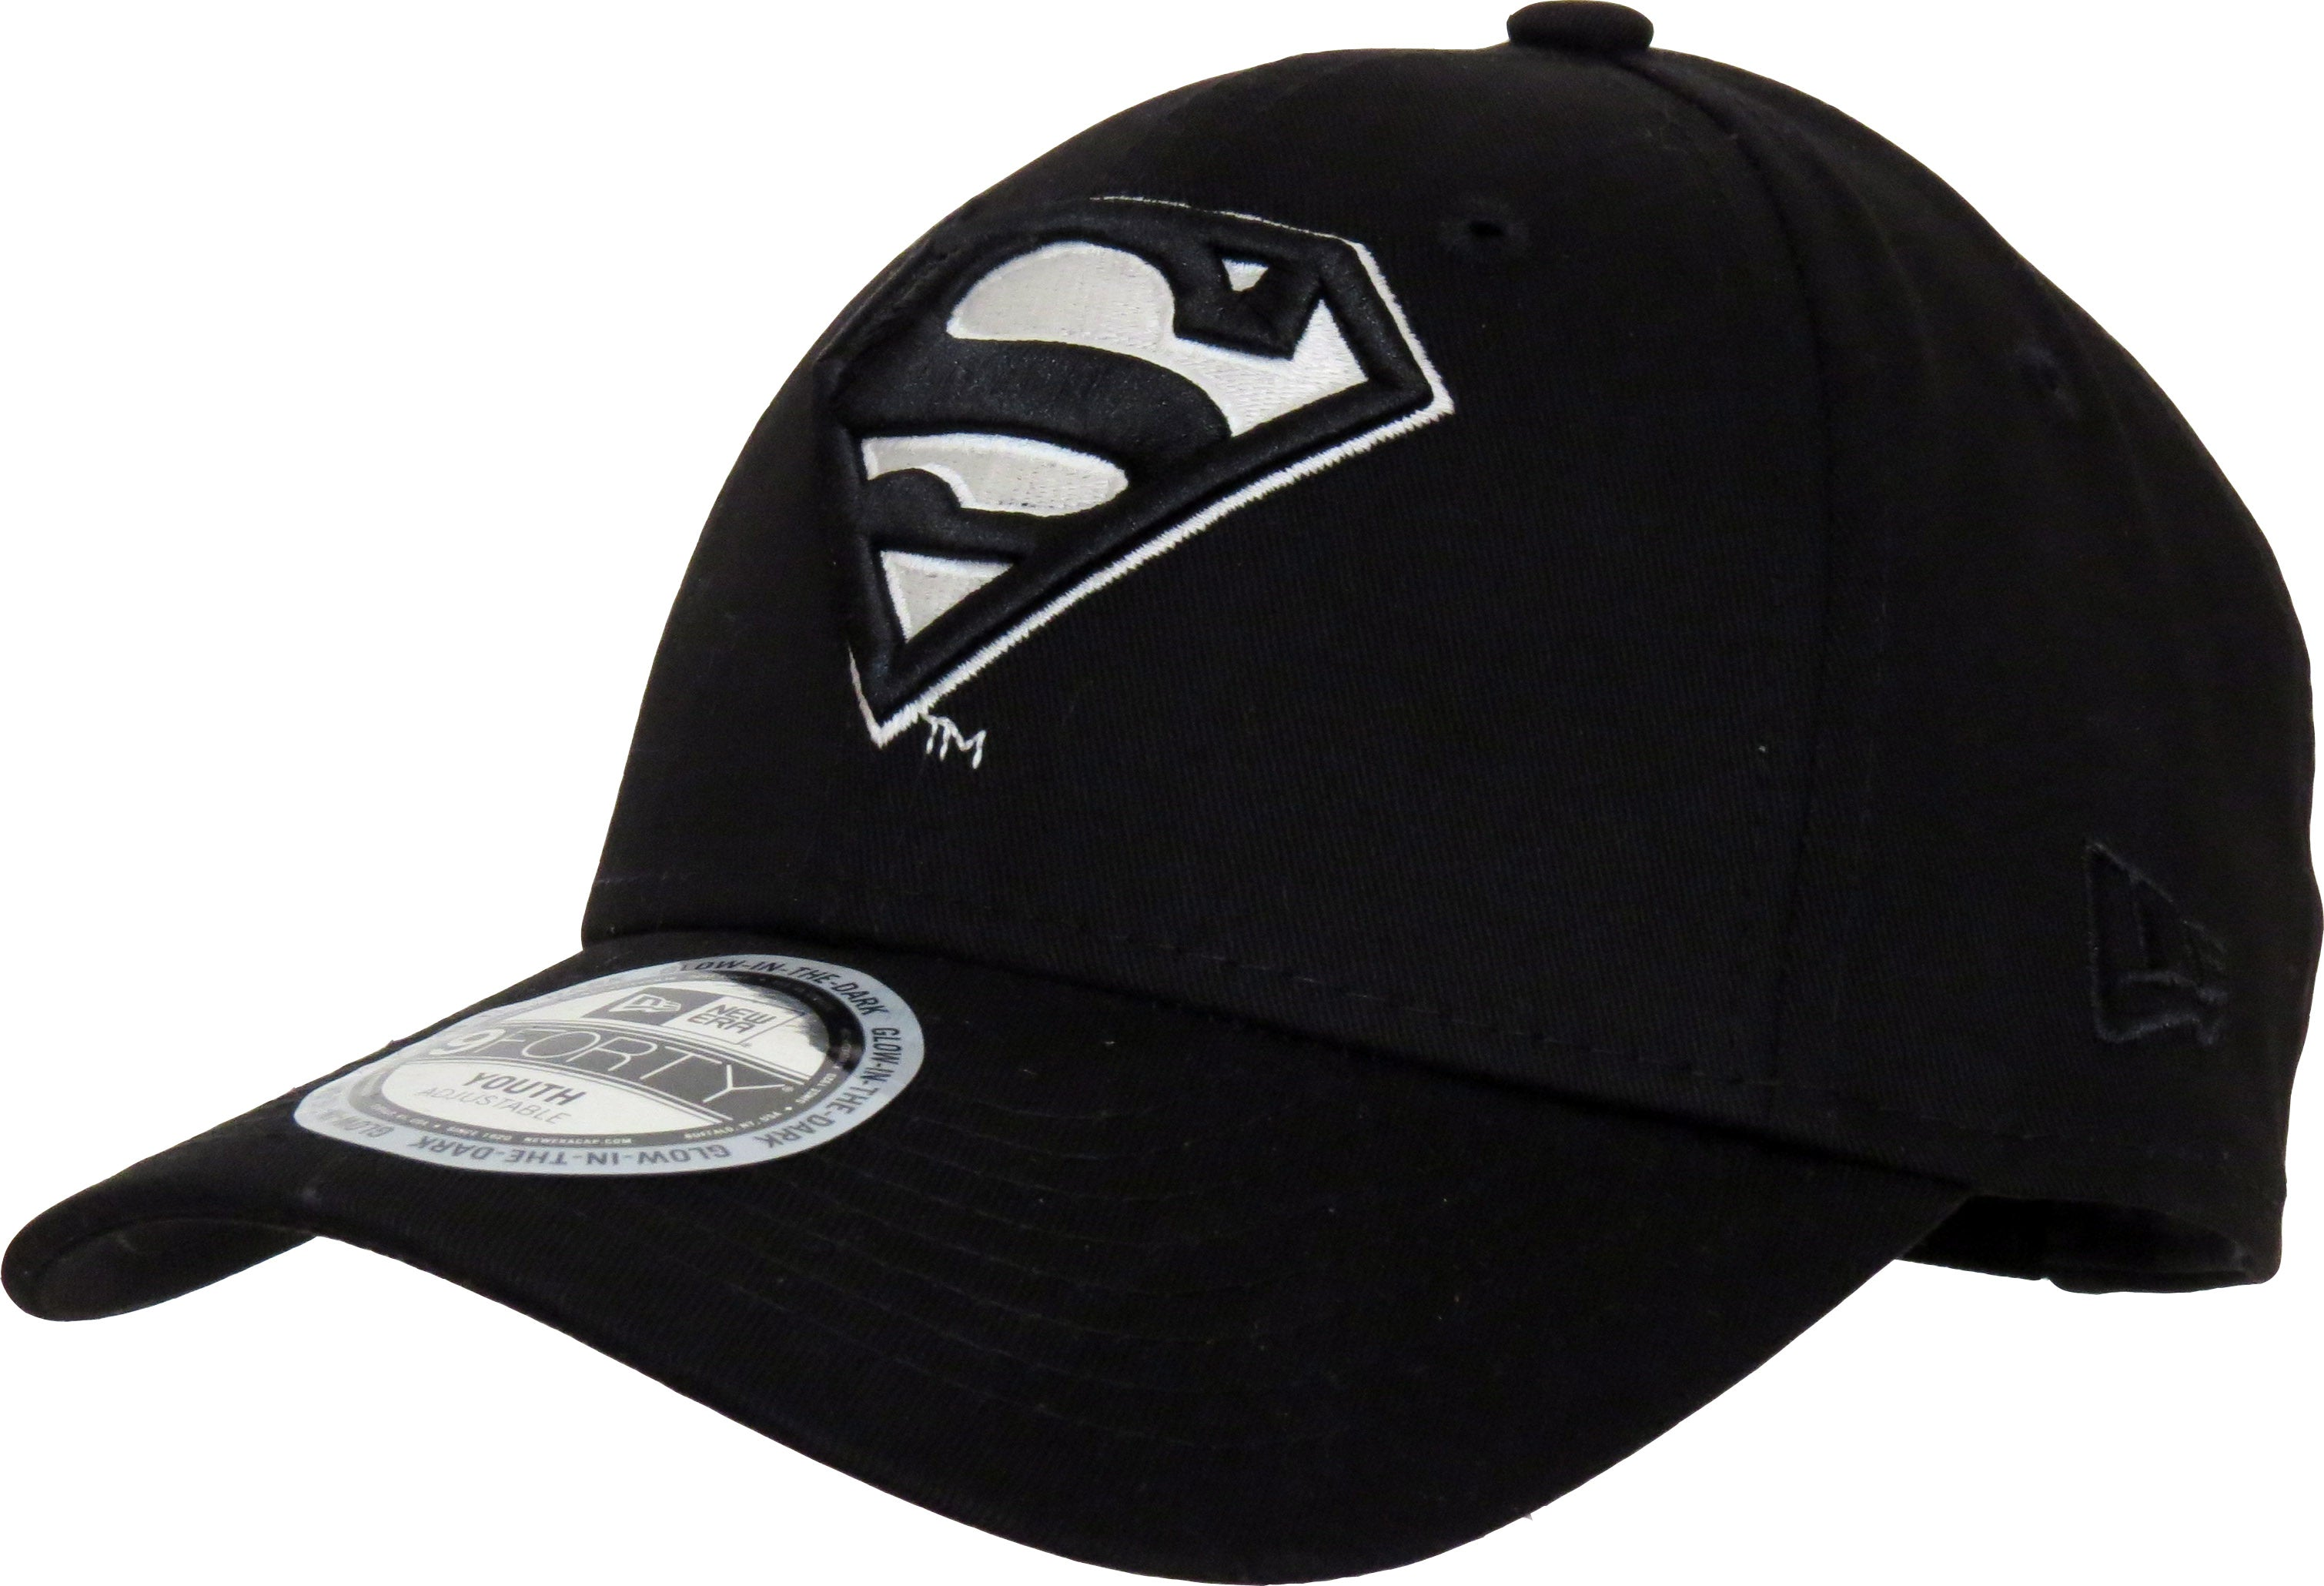 official photos 9f256 48956 ... norway superman new era kids 940 glow in the dark black cap ages 2 10  years